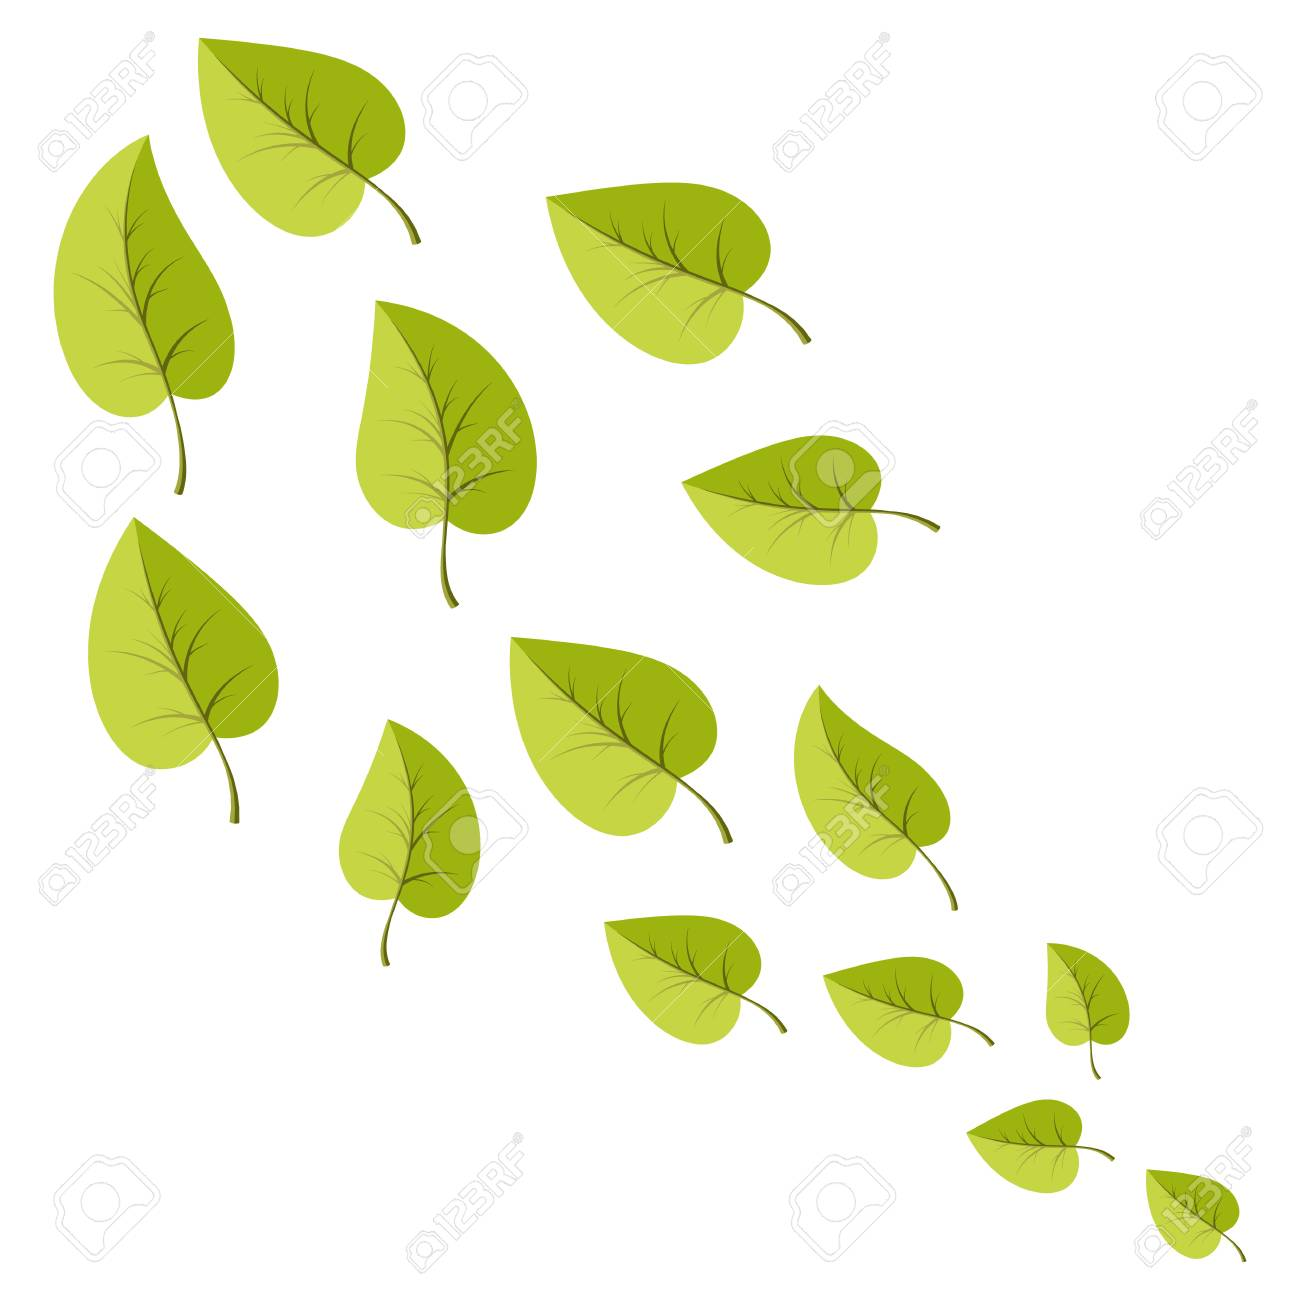 Leafs Set For Decoration And Web Illsutration Vecotor Cartoon Royalty Free Cliparts Vectors And Stock Illustration Image 110944776